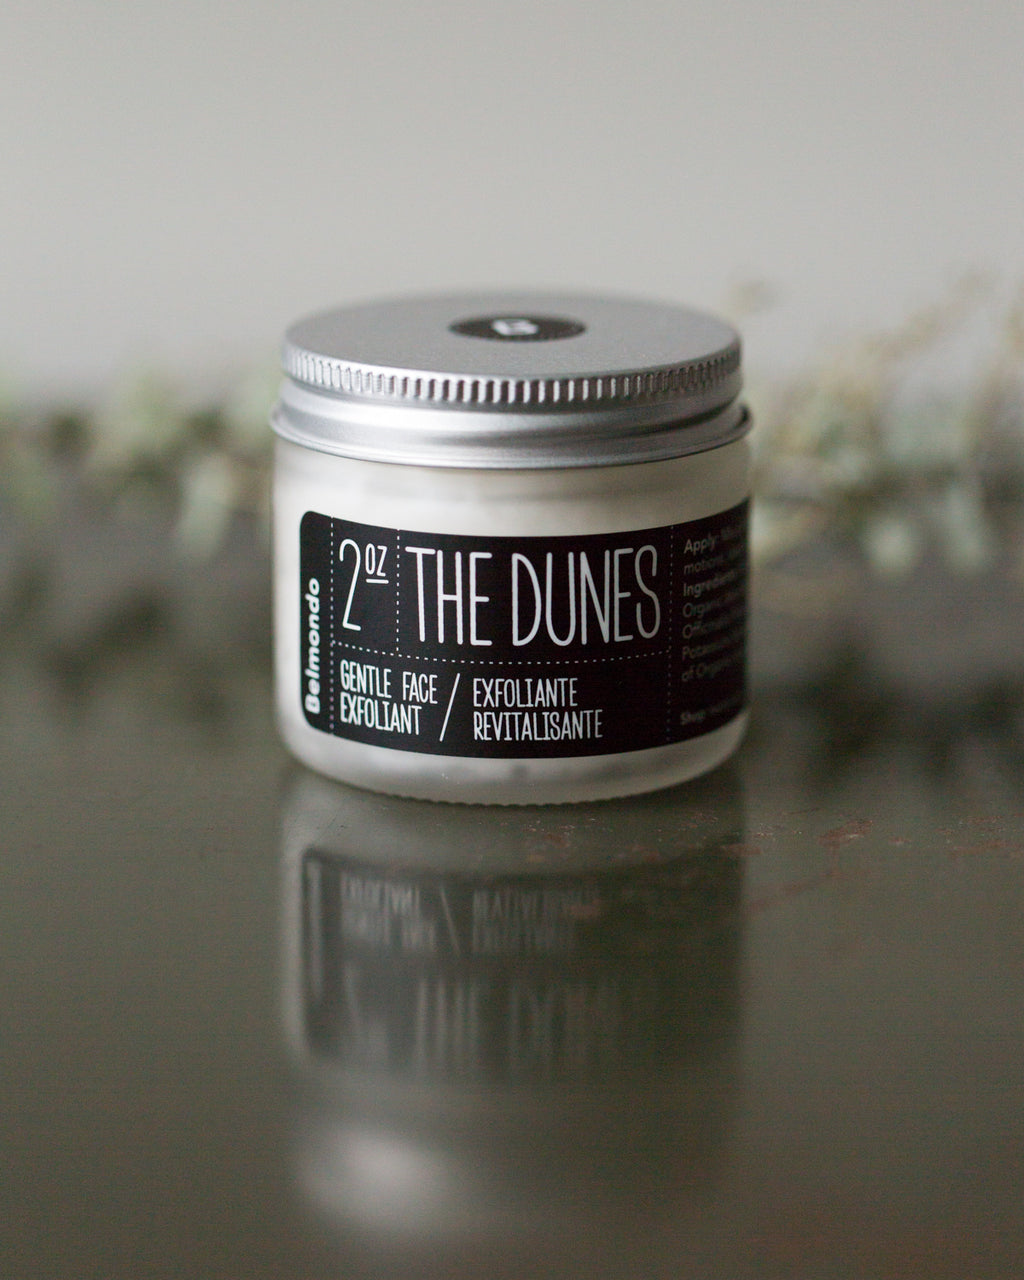 Belmondo 'The Dunes' Exfoliant